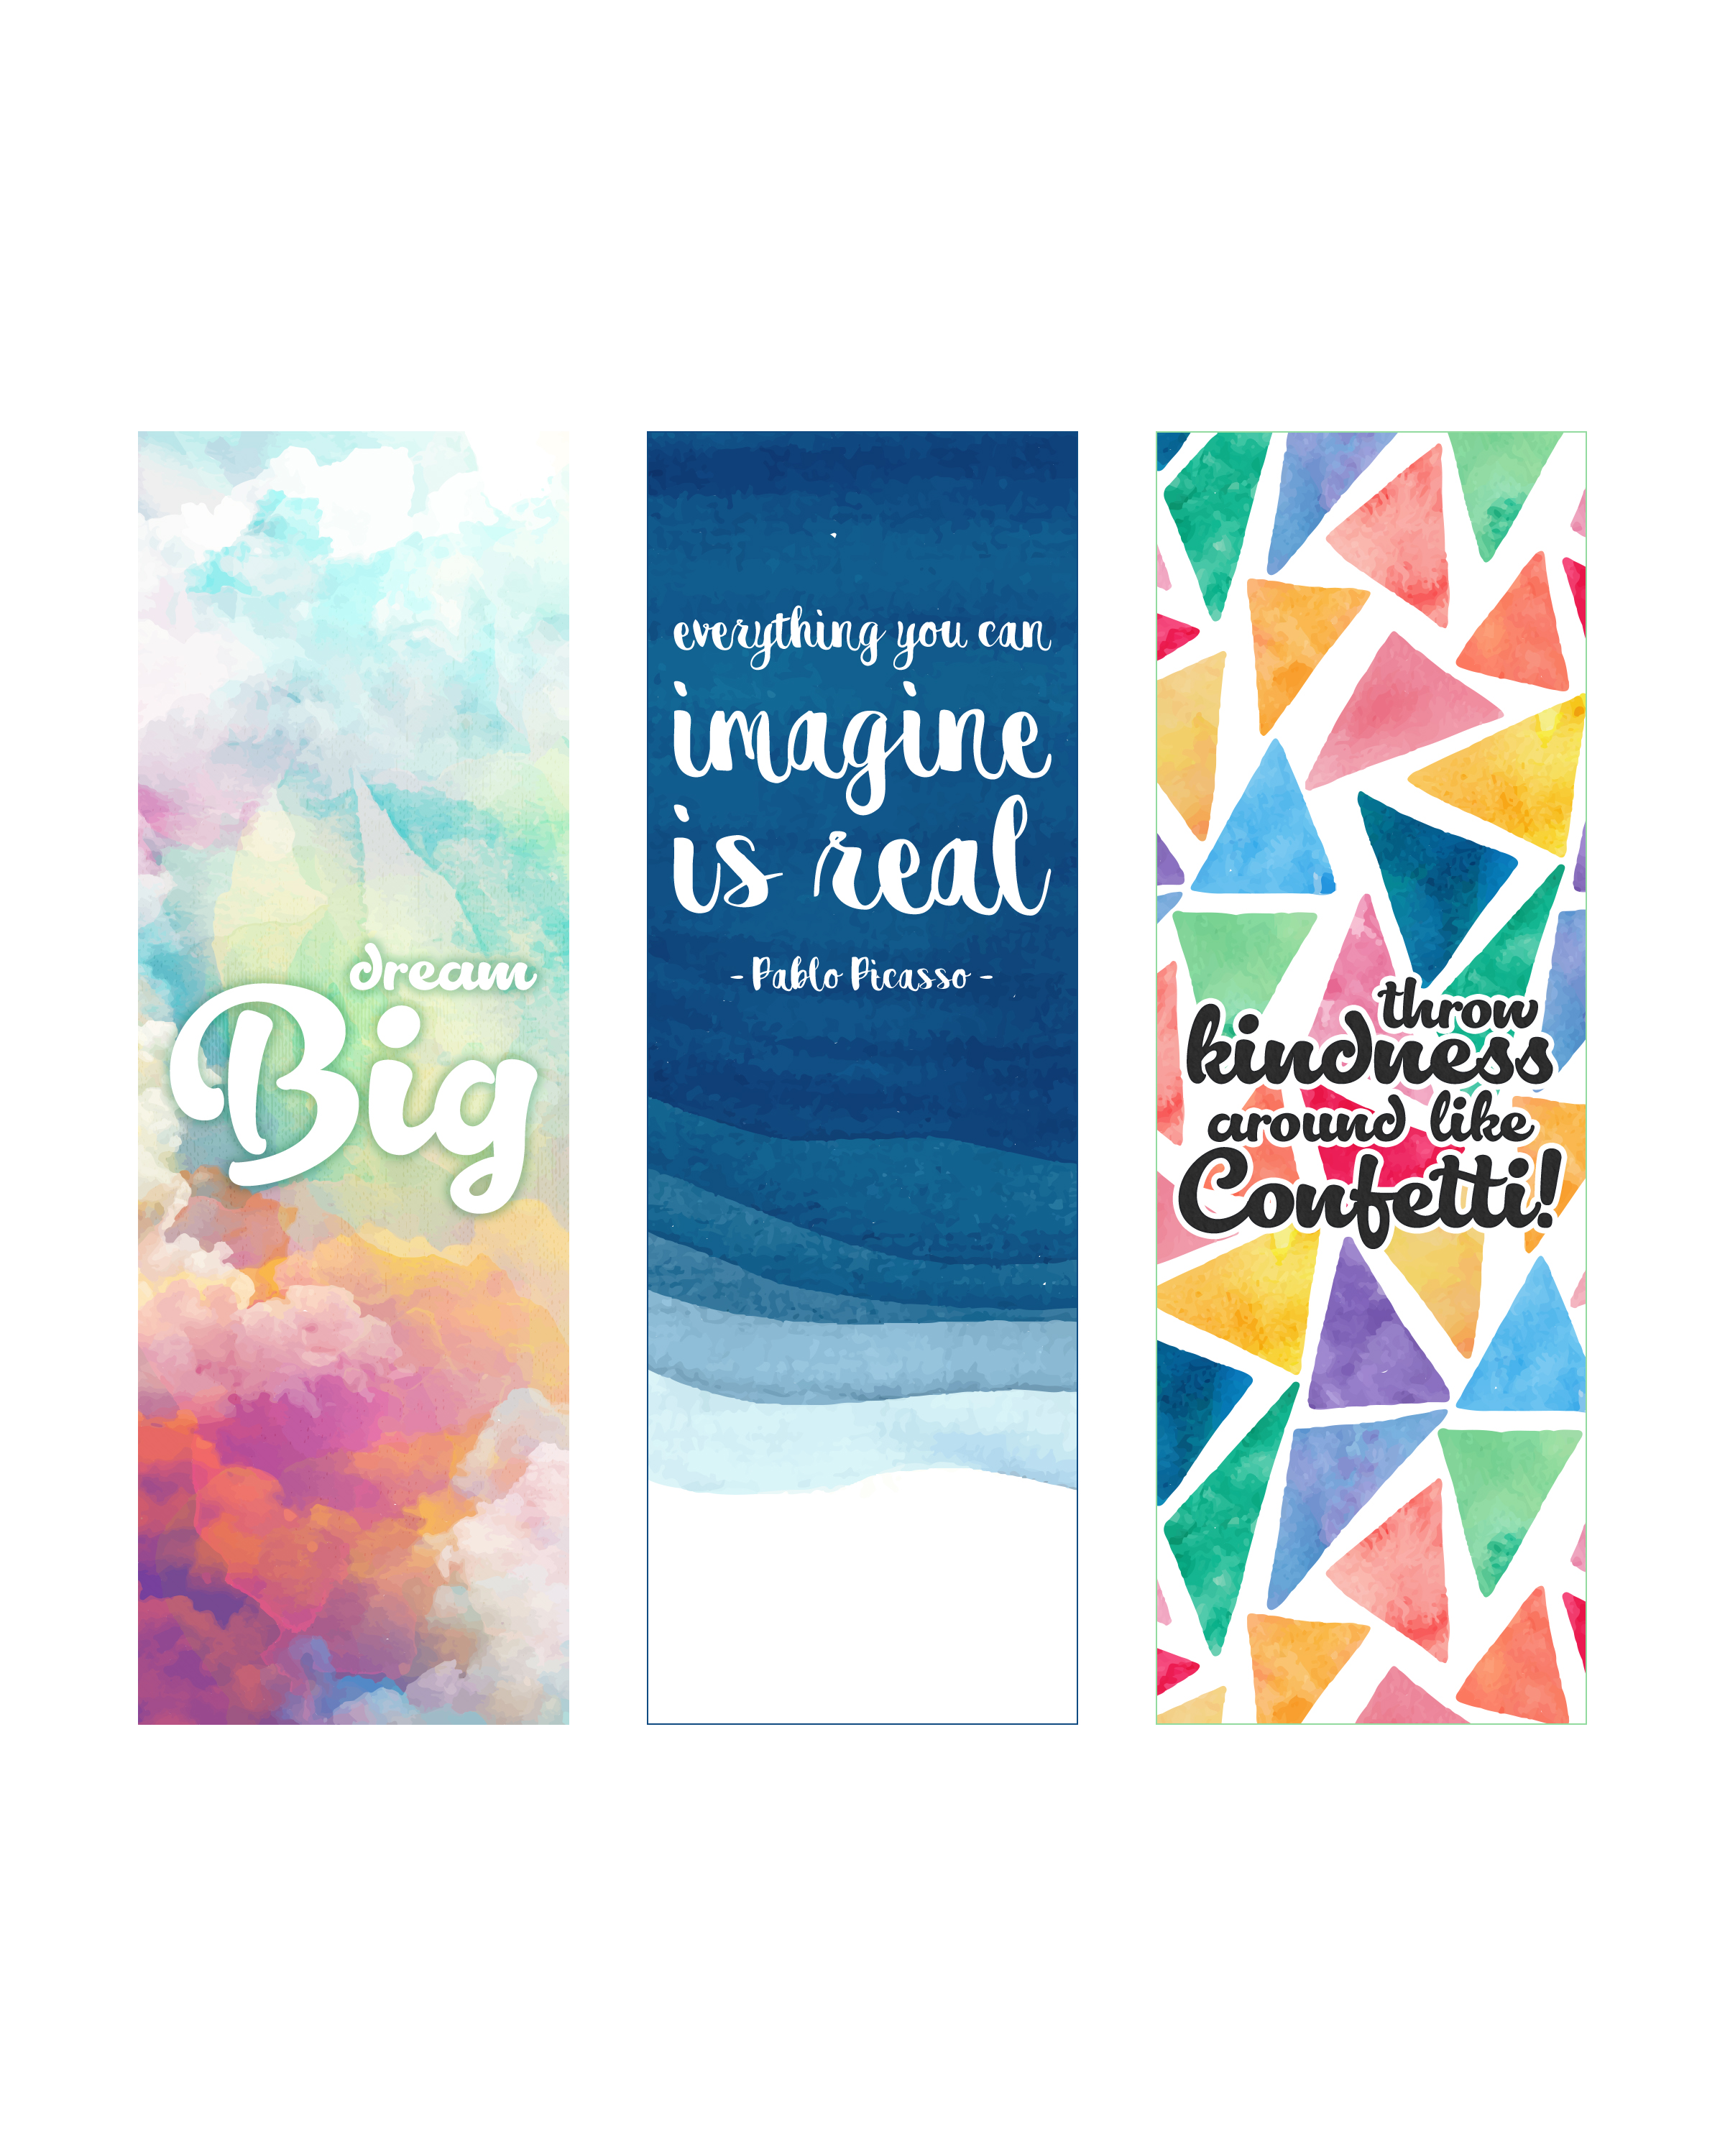 image about Bookmarks Printable titled Cost-free Printable Inspirational Estimate Bookmarks - The Cottage